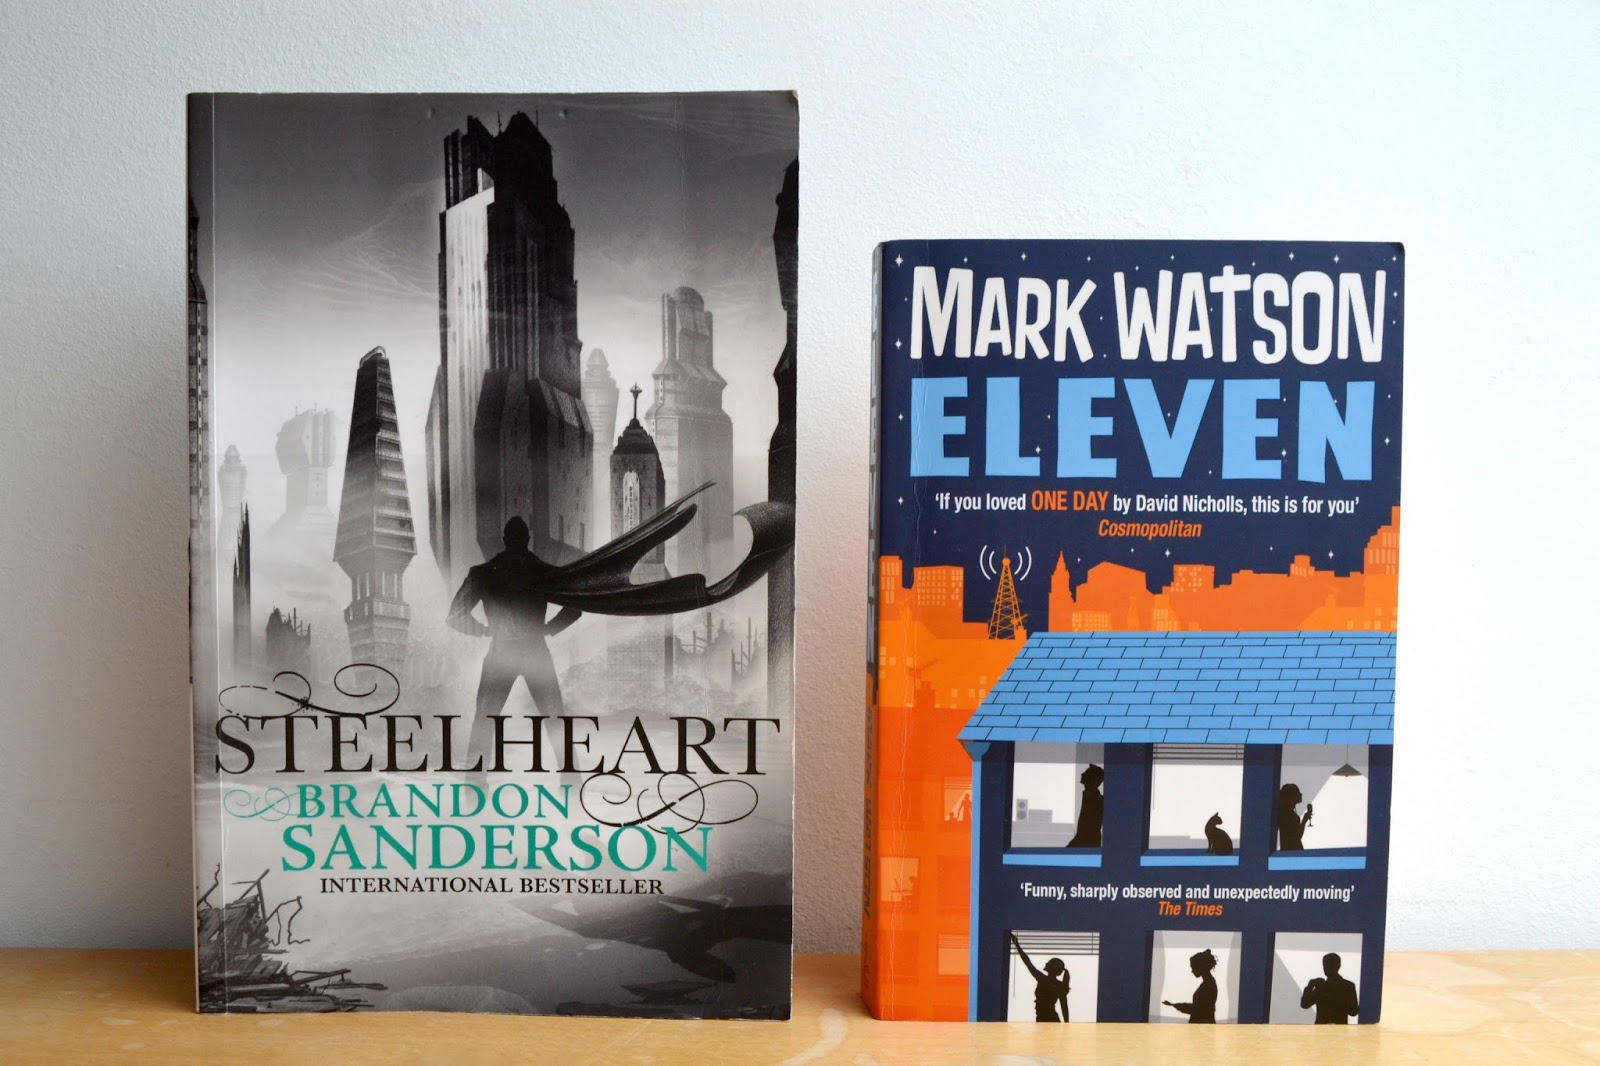 Steel heart by Brandon Sanderson and Eleven by Mark Watson